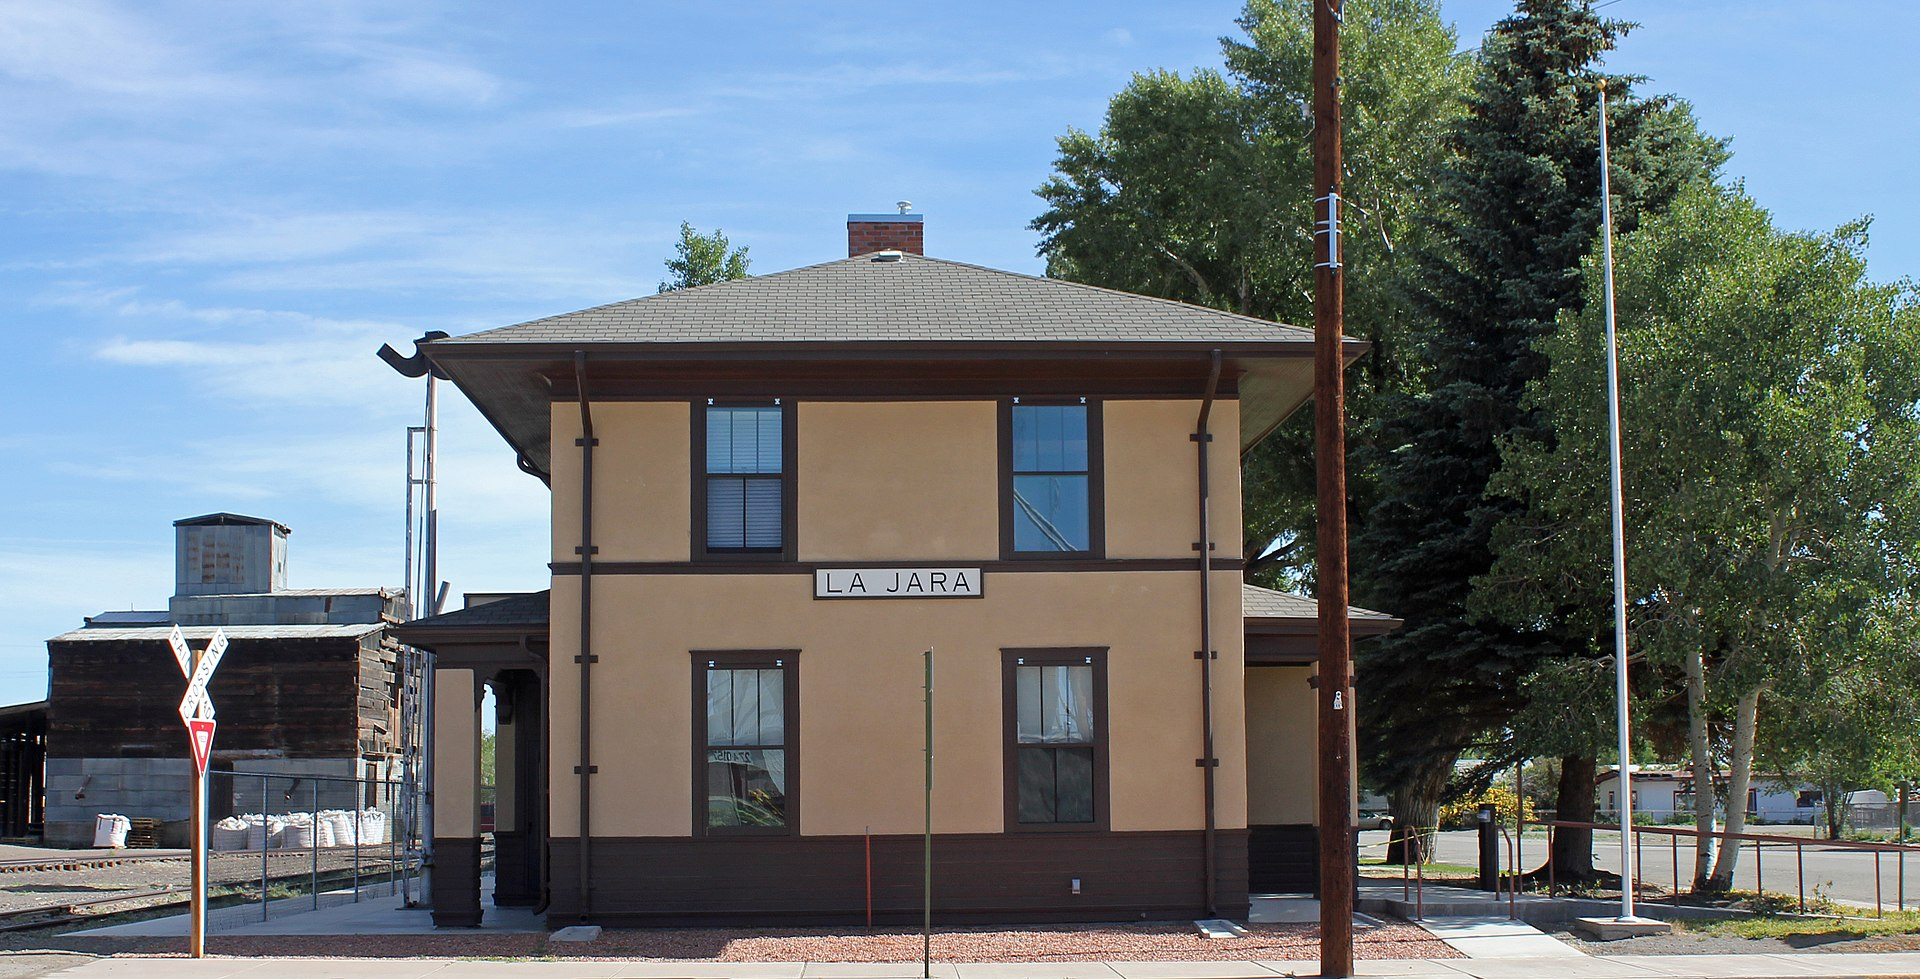 la jara See new listings in la jara, co right here at realtorcom® check out homes for sale, foreclosures, rentals and more avialable properties.